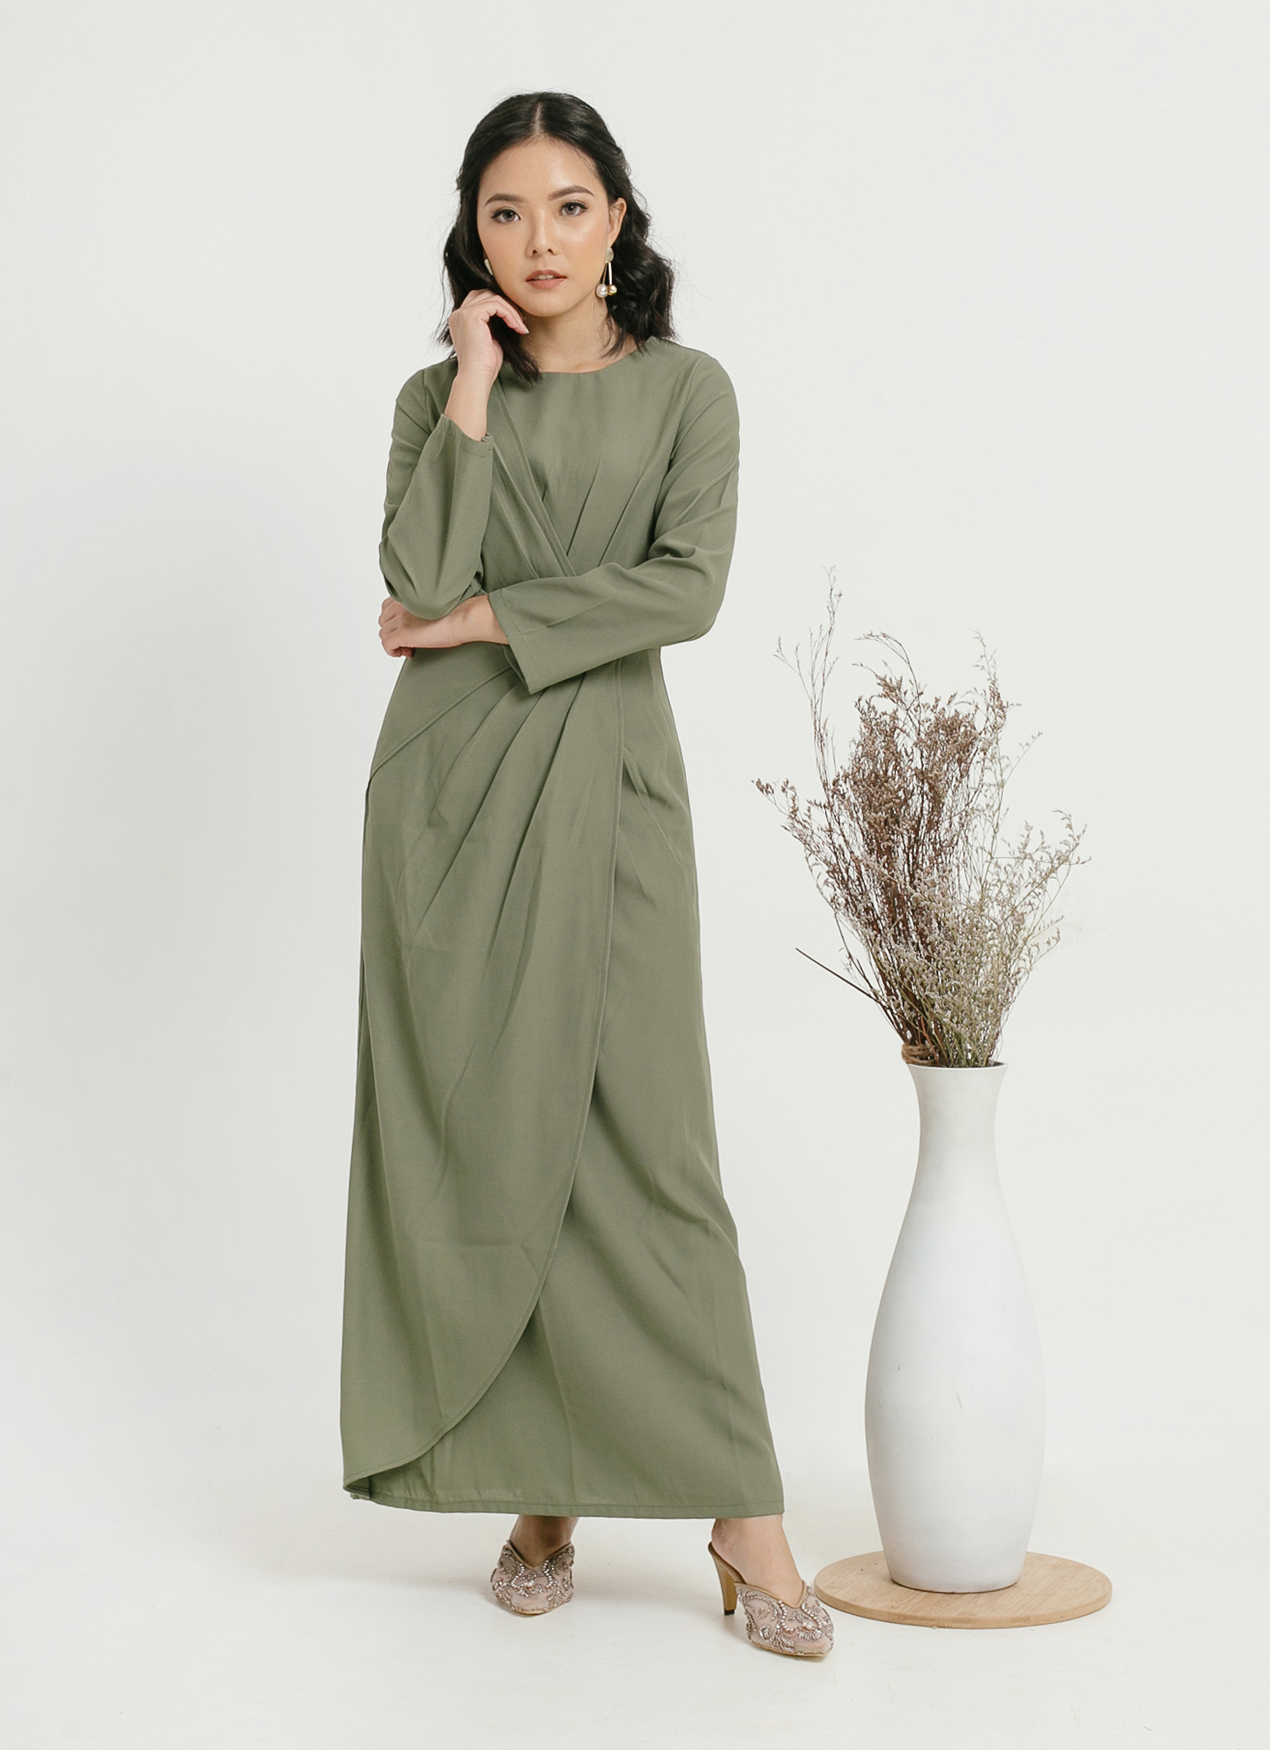 CLOTH INC Laila Overlap Pleat Dress - Pine Green